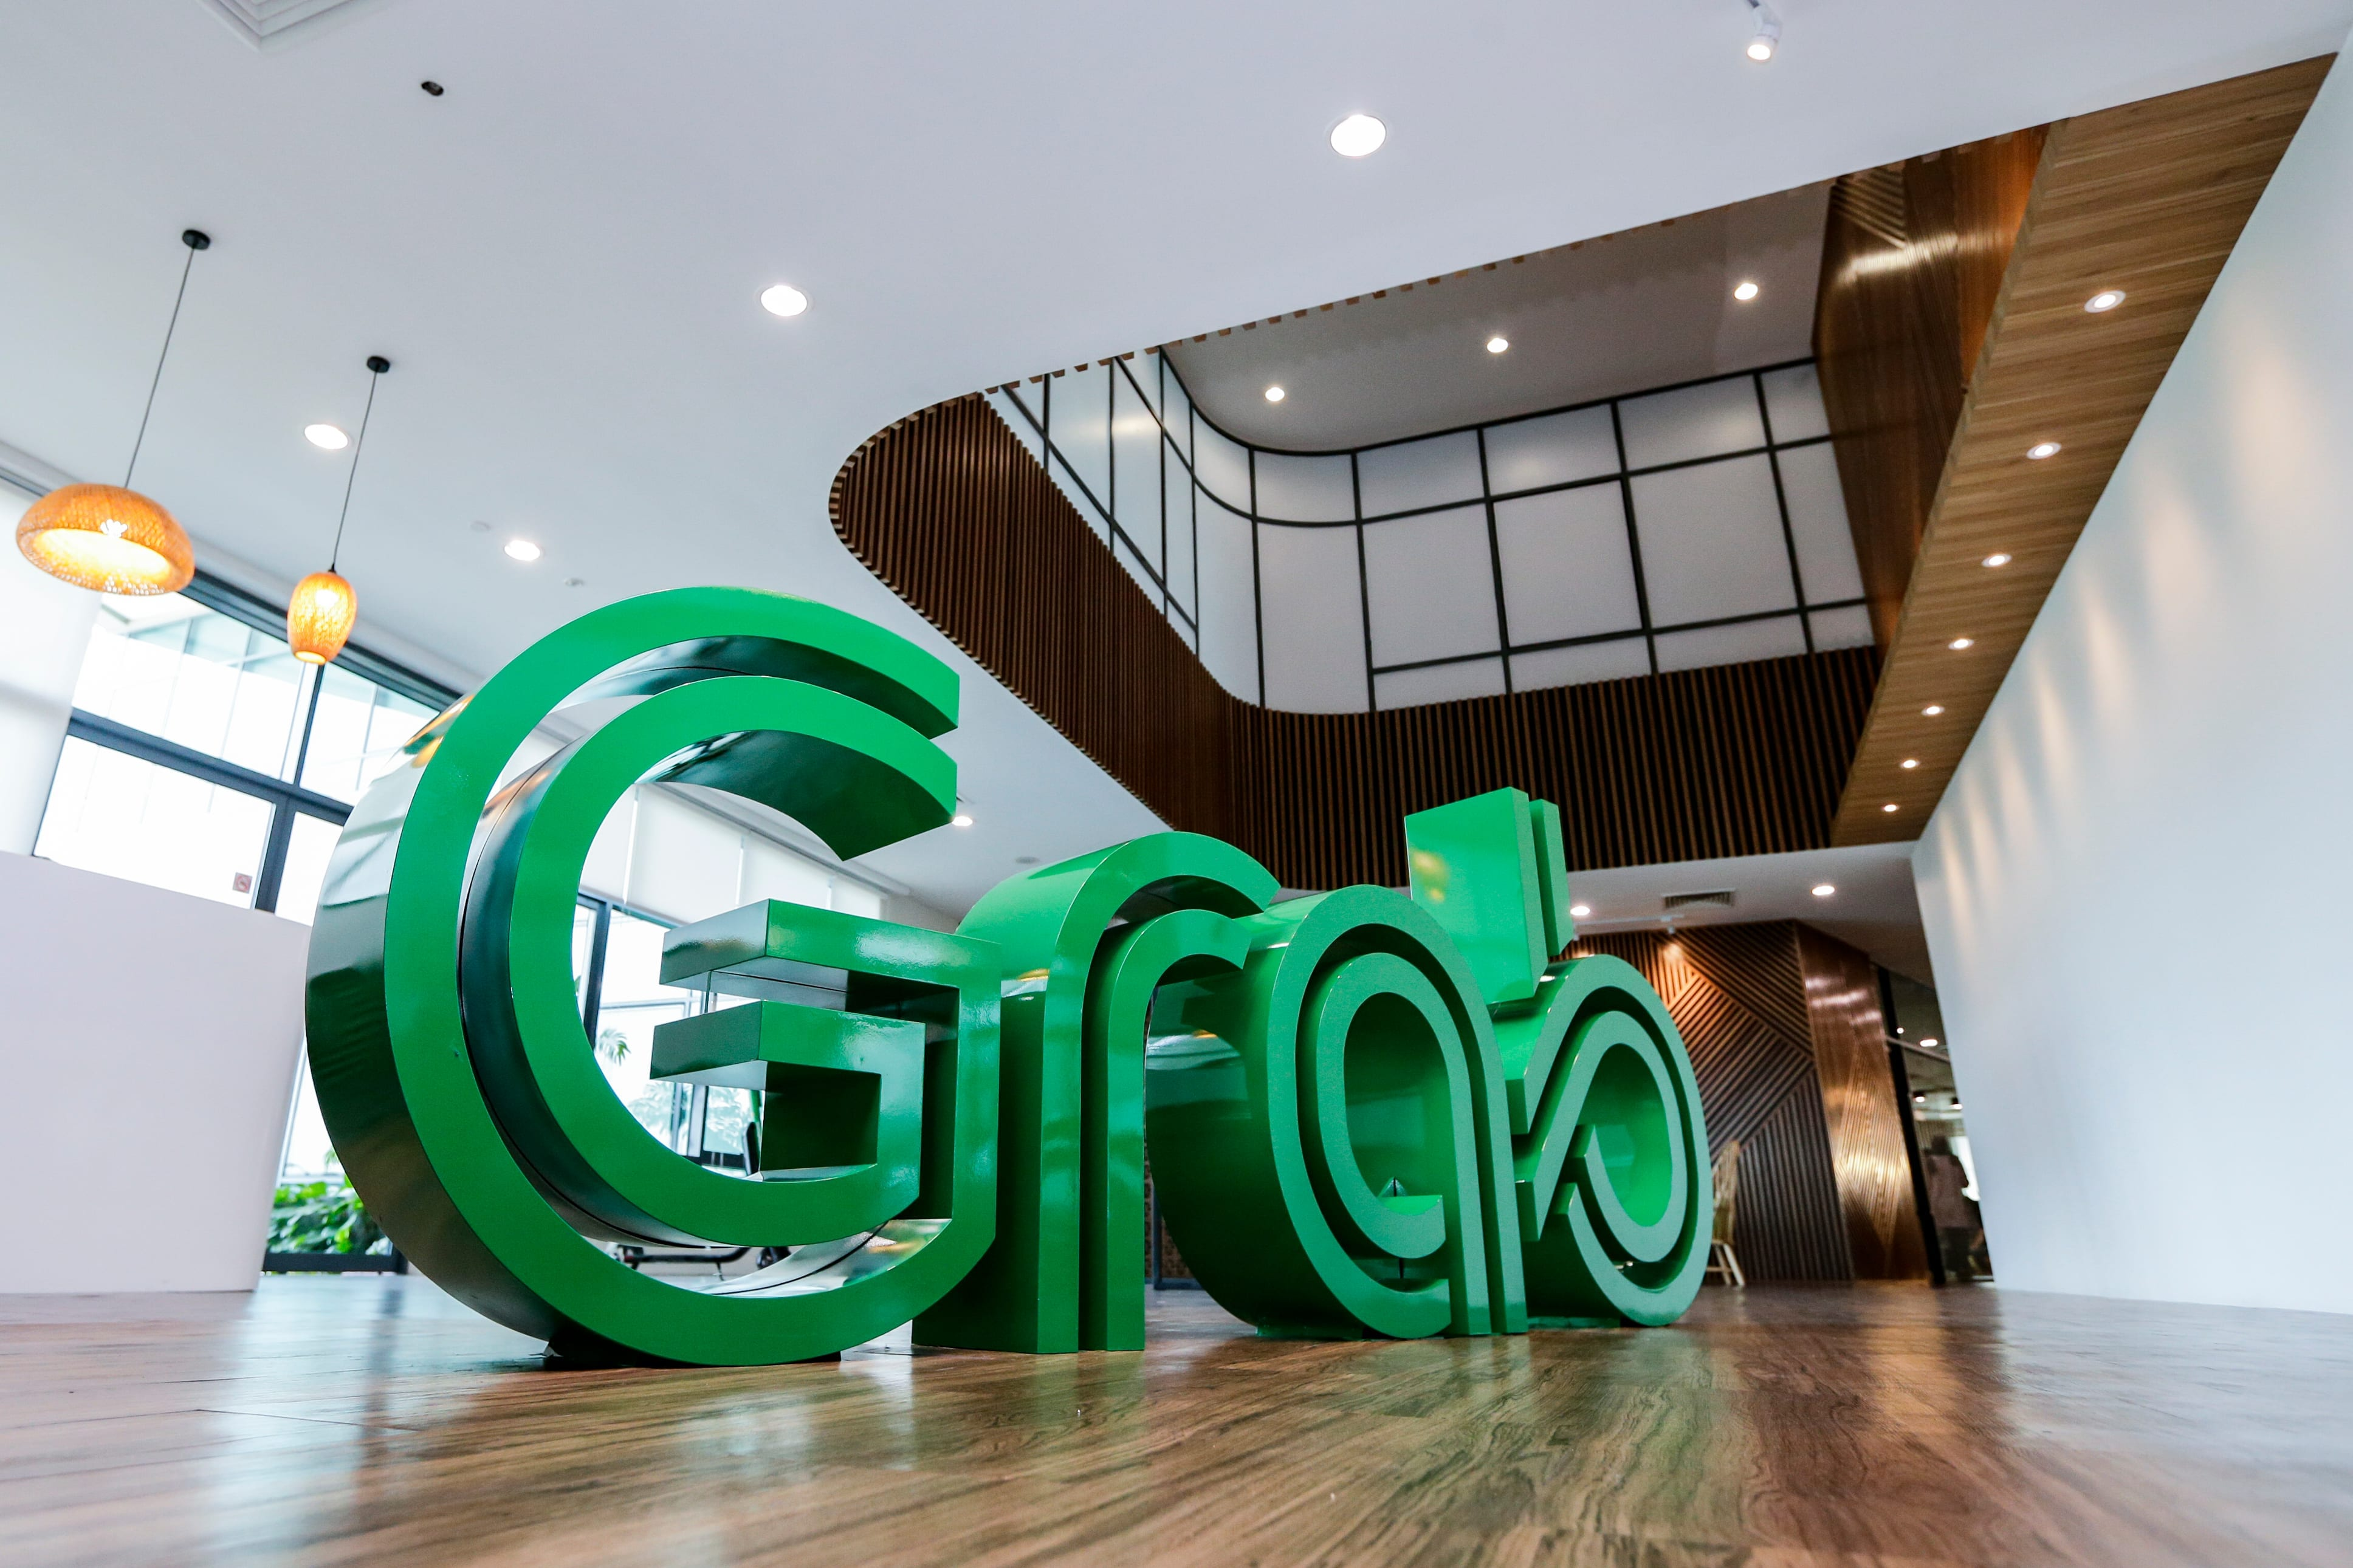 Grab has acquired Bento and is rebranding it under its own moniker.